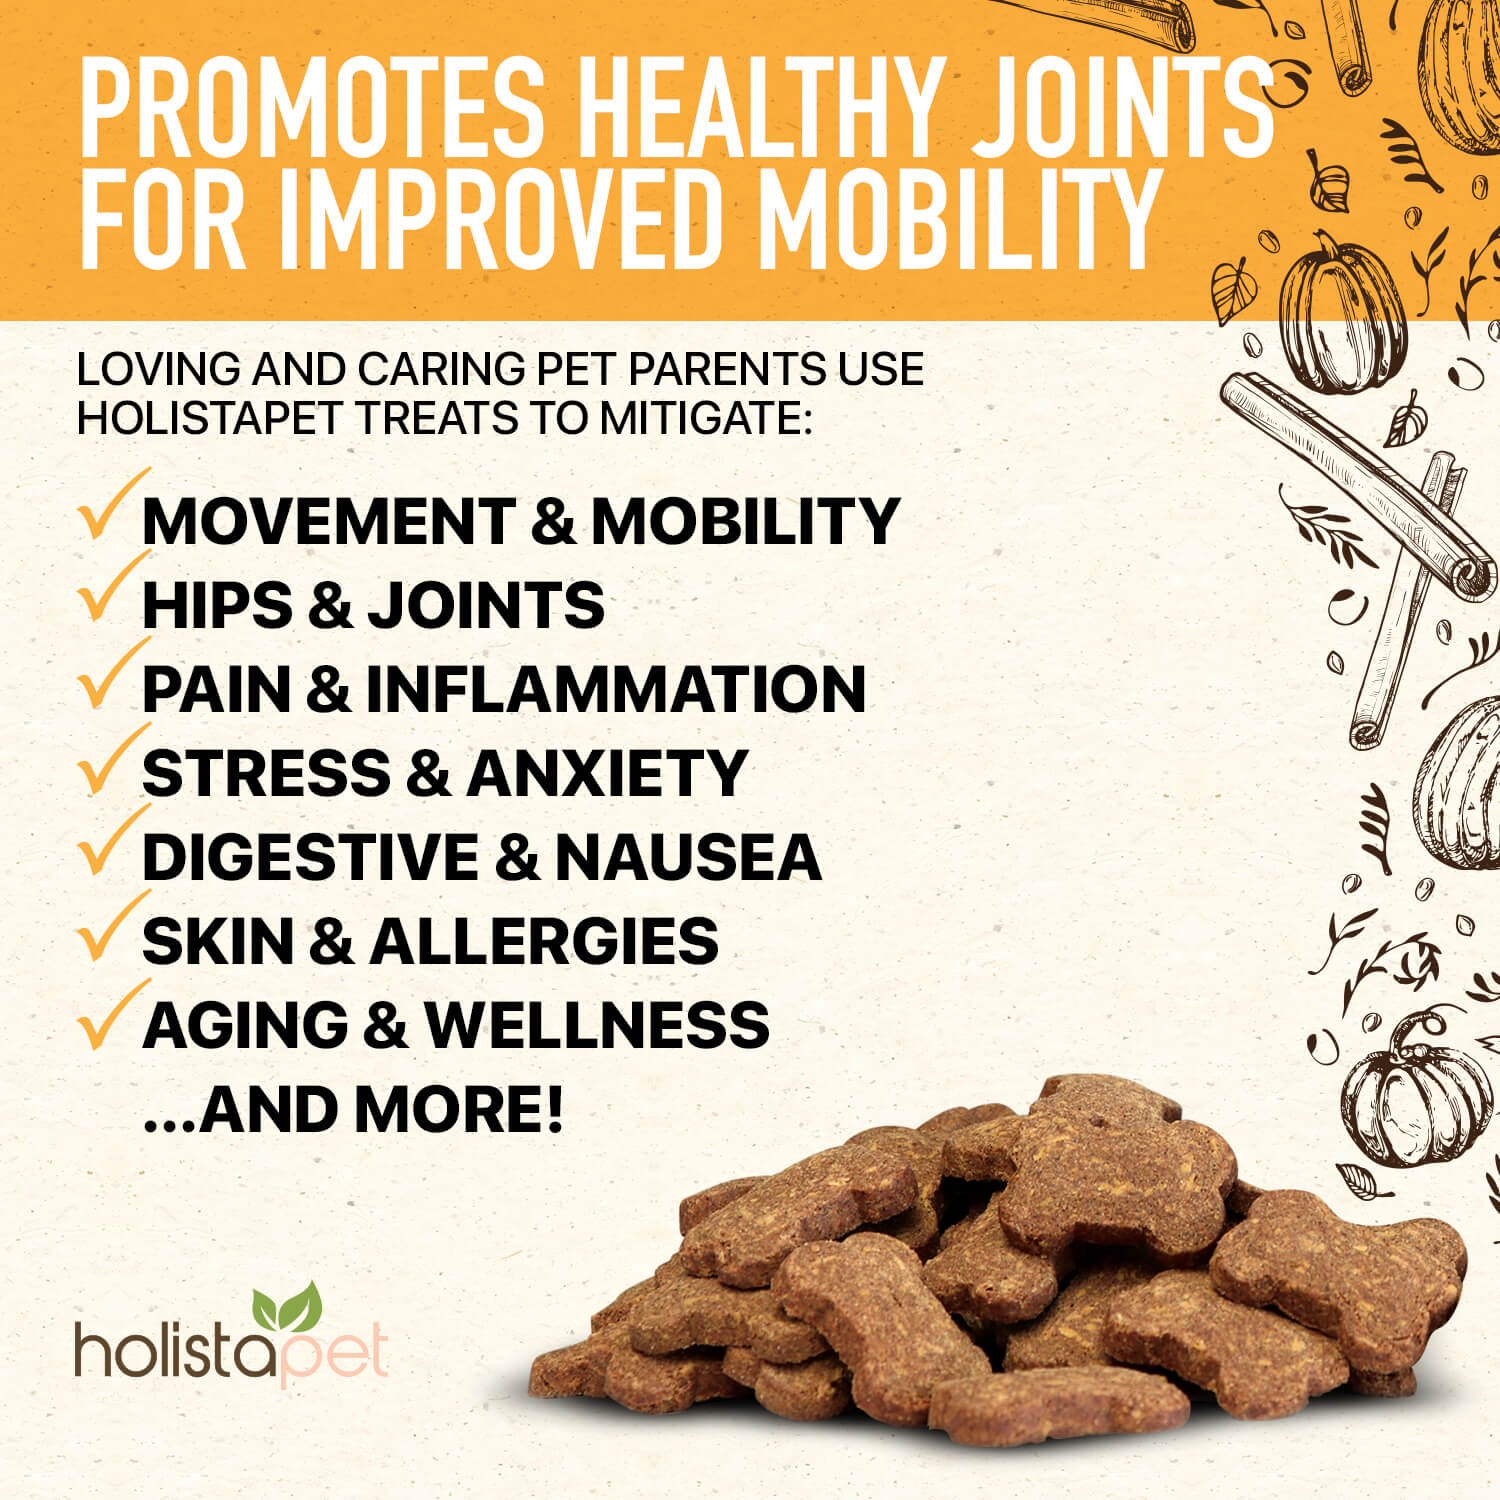 Holistapet Hemp Joint And Mobility Care Dog Treats Promotes Movement And Mobility Hips And Joints Pain And Inflammation Stress And Anxiety Digestive Wellnes And More